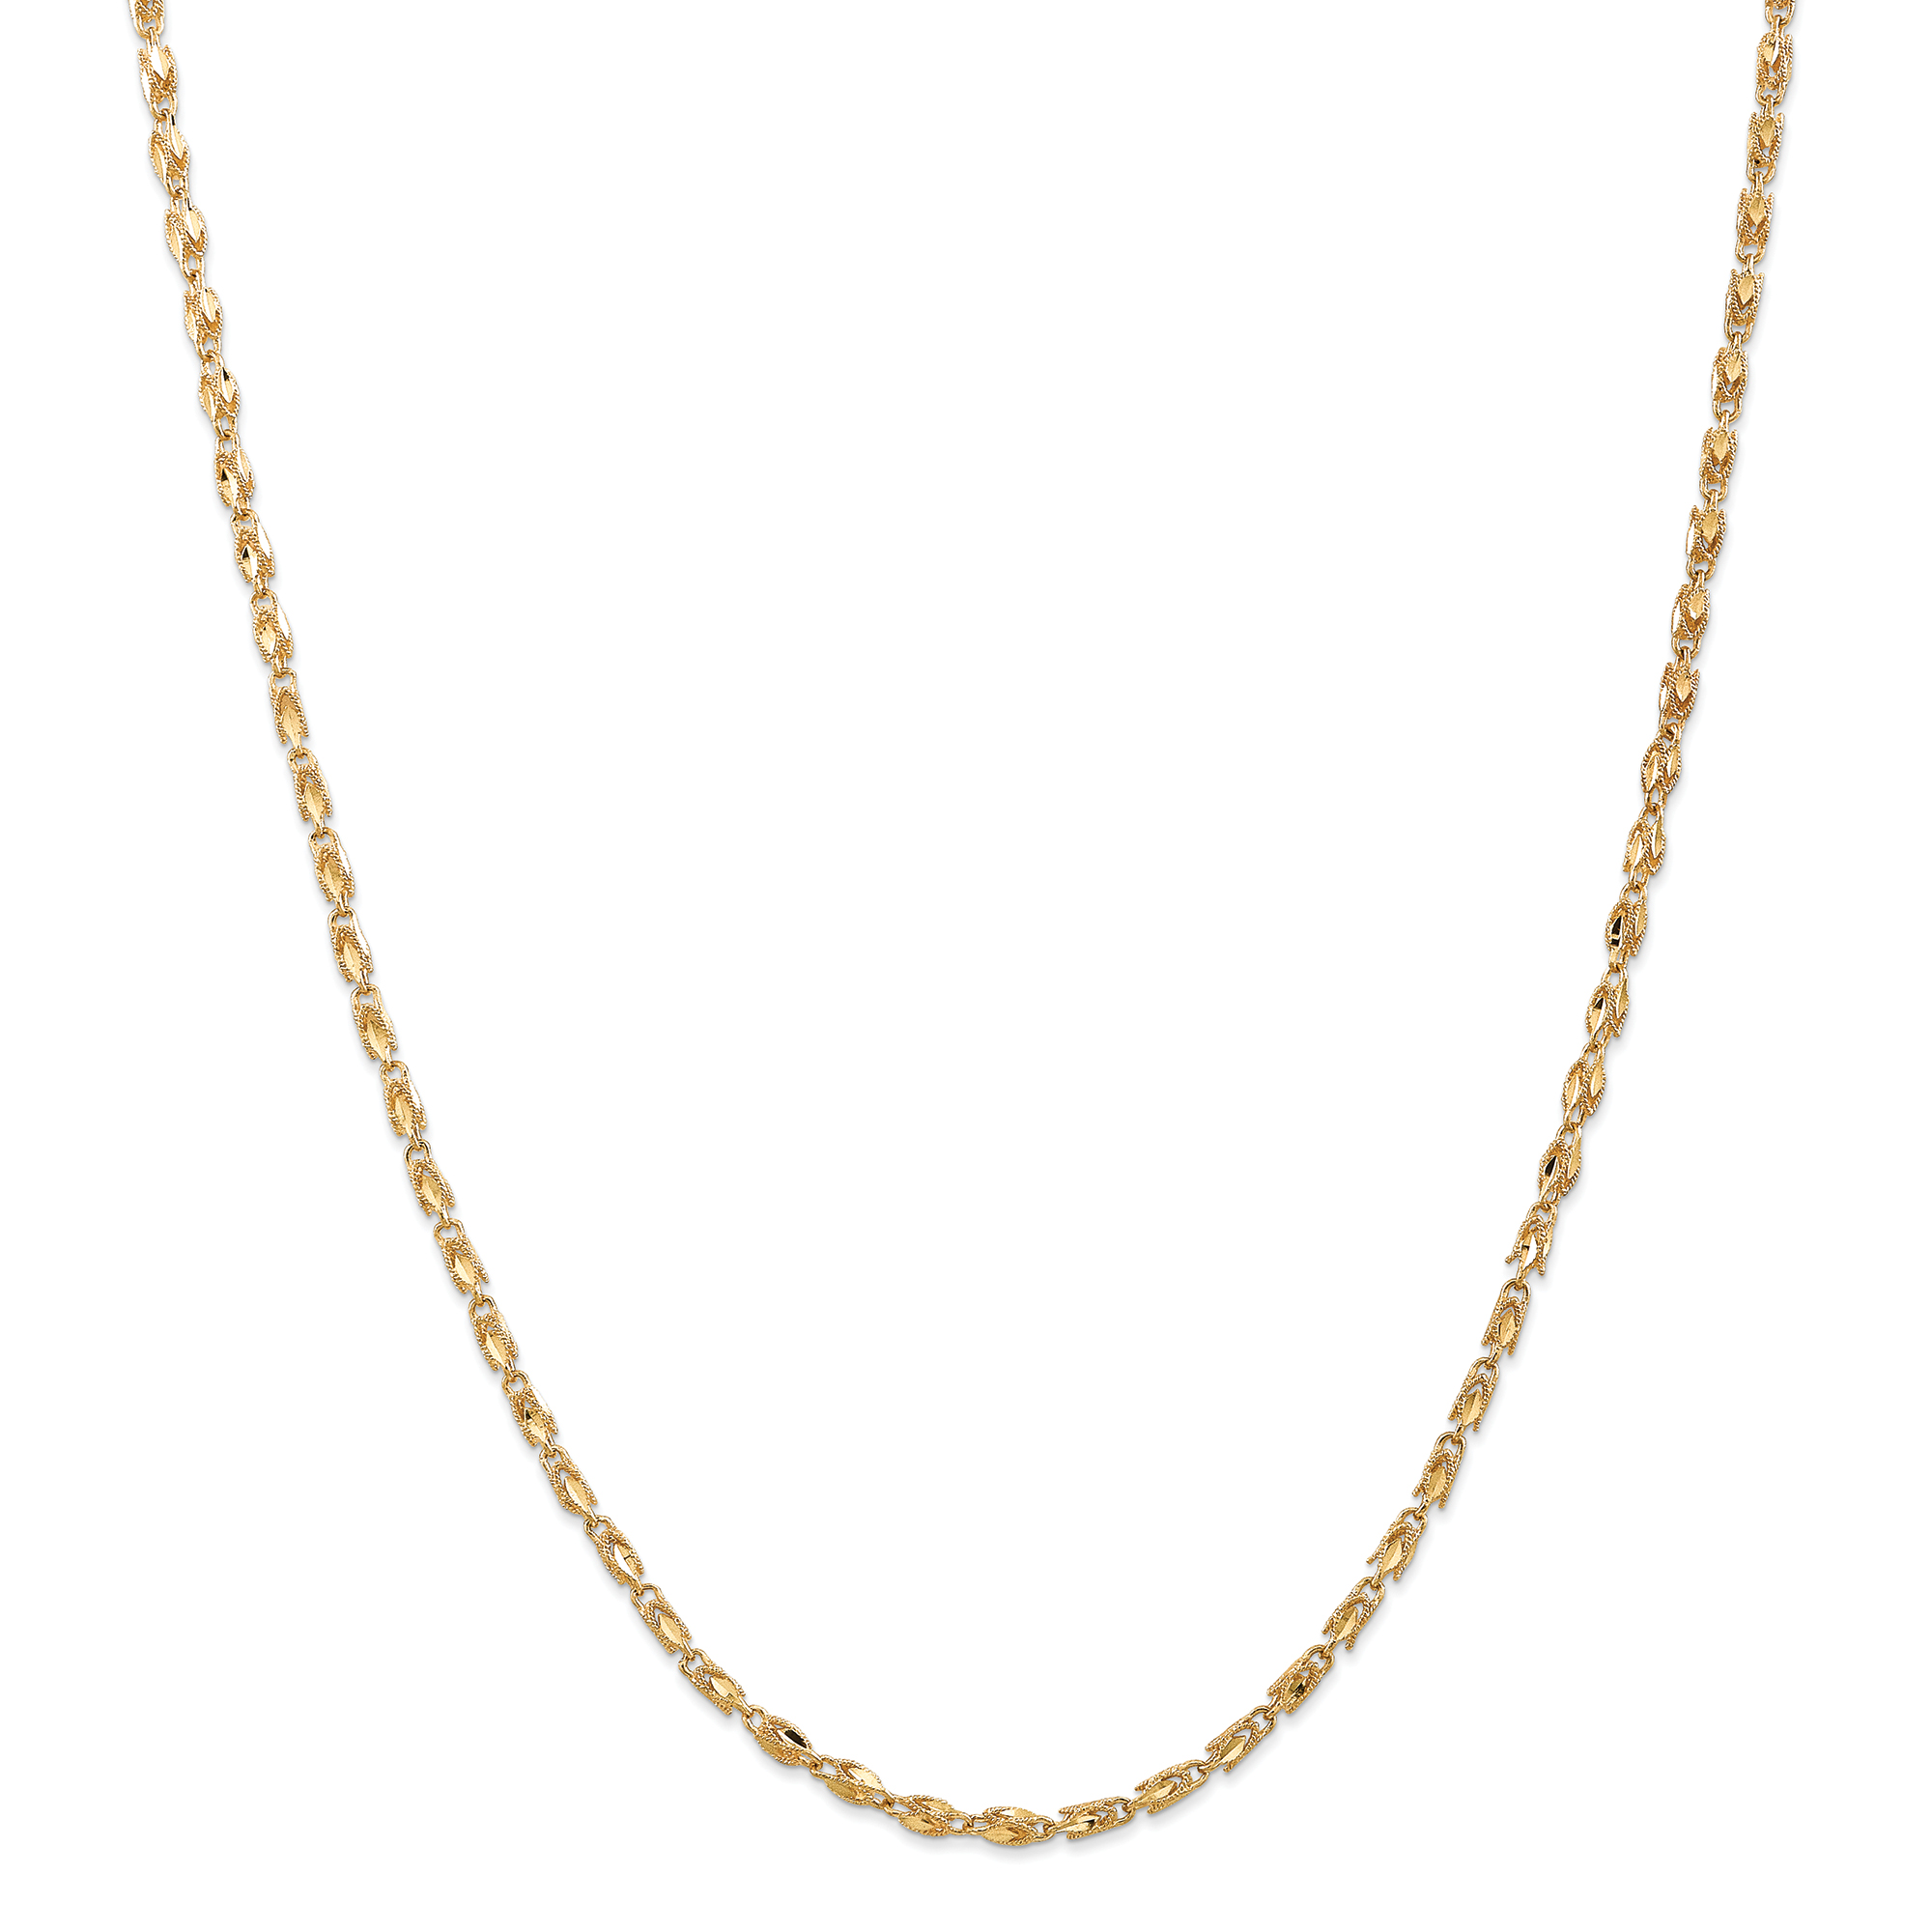 14k Yellow Gold 2.5mm Marquise Chain Necklace 18 Inch Pendant Charm Fine Jewelry For Women Gift Set